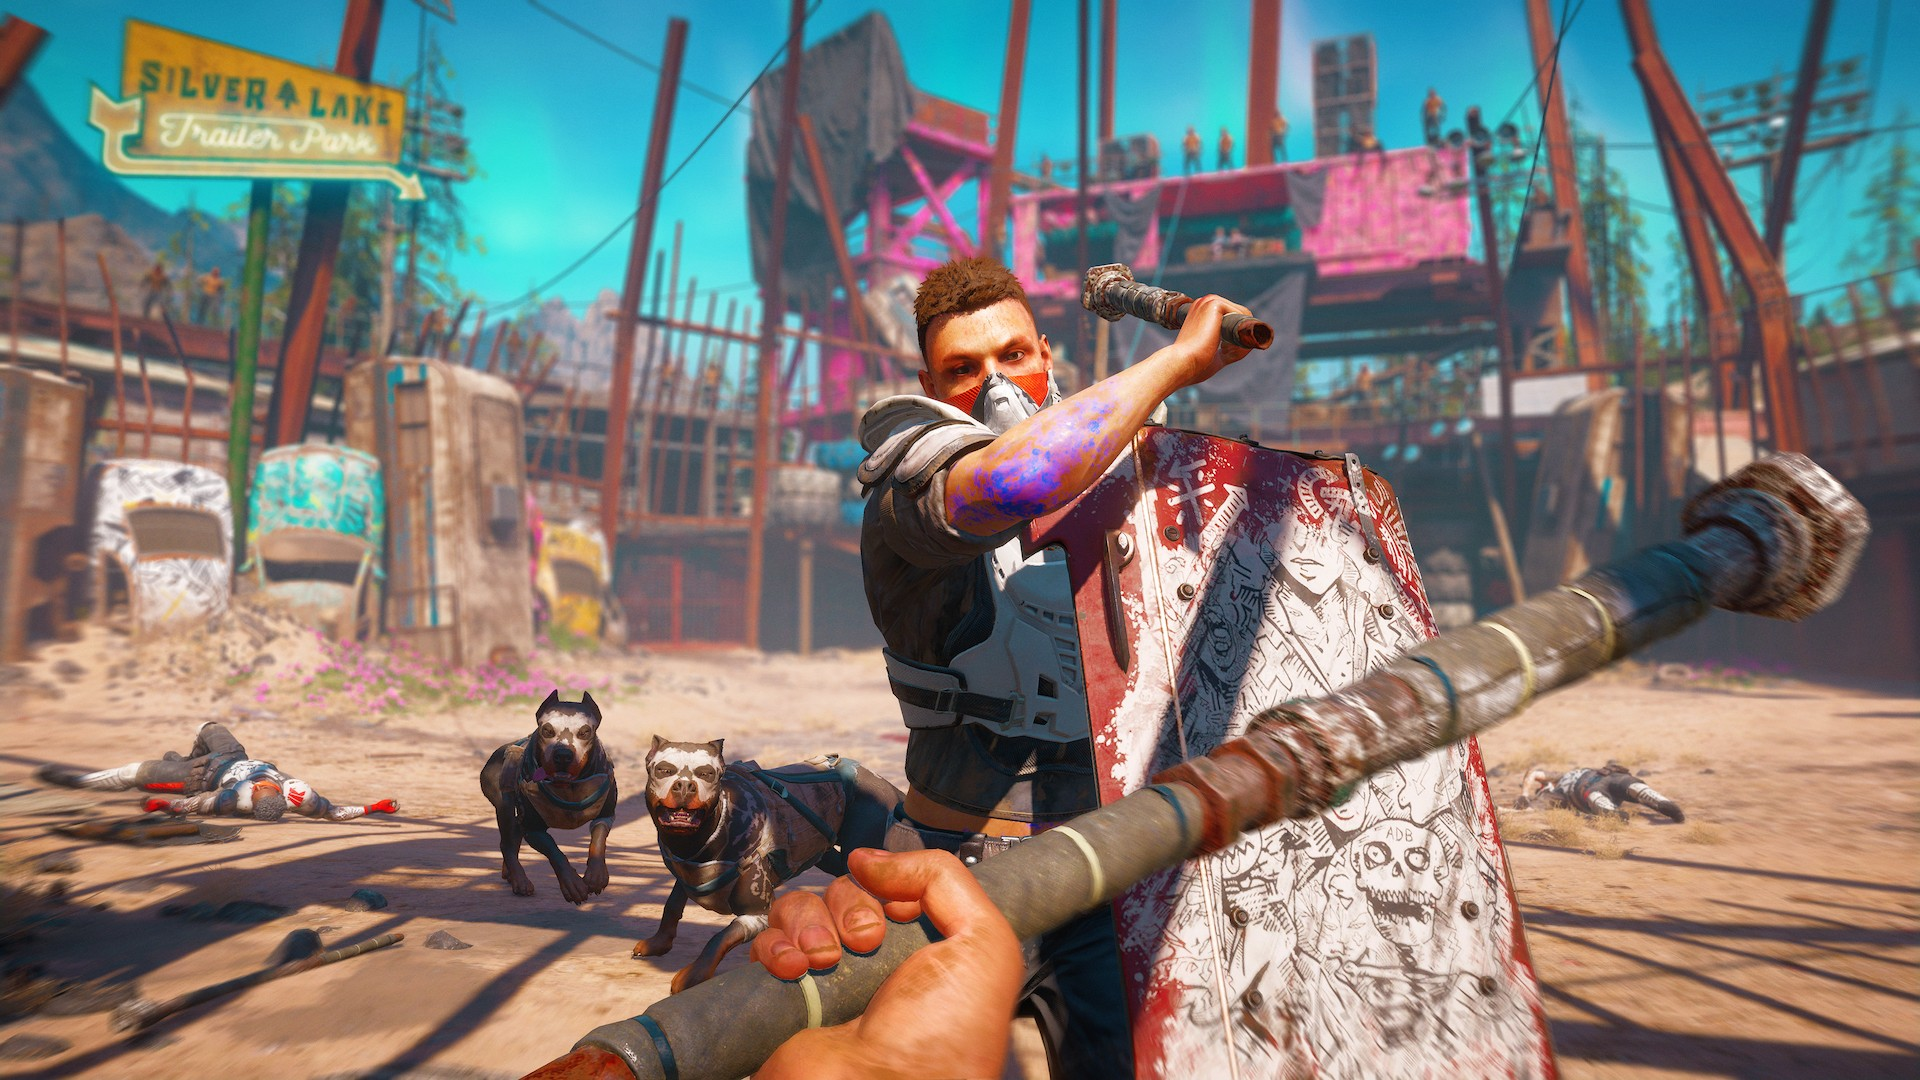 Far Cry New Dawn review: Is its violence fun, horrific, or both